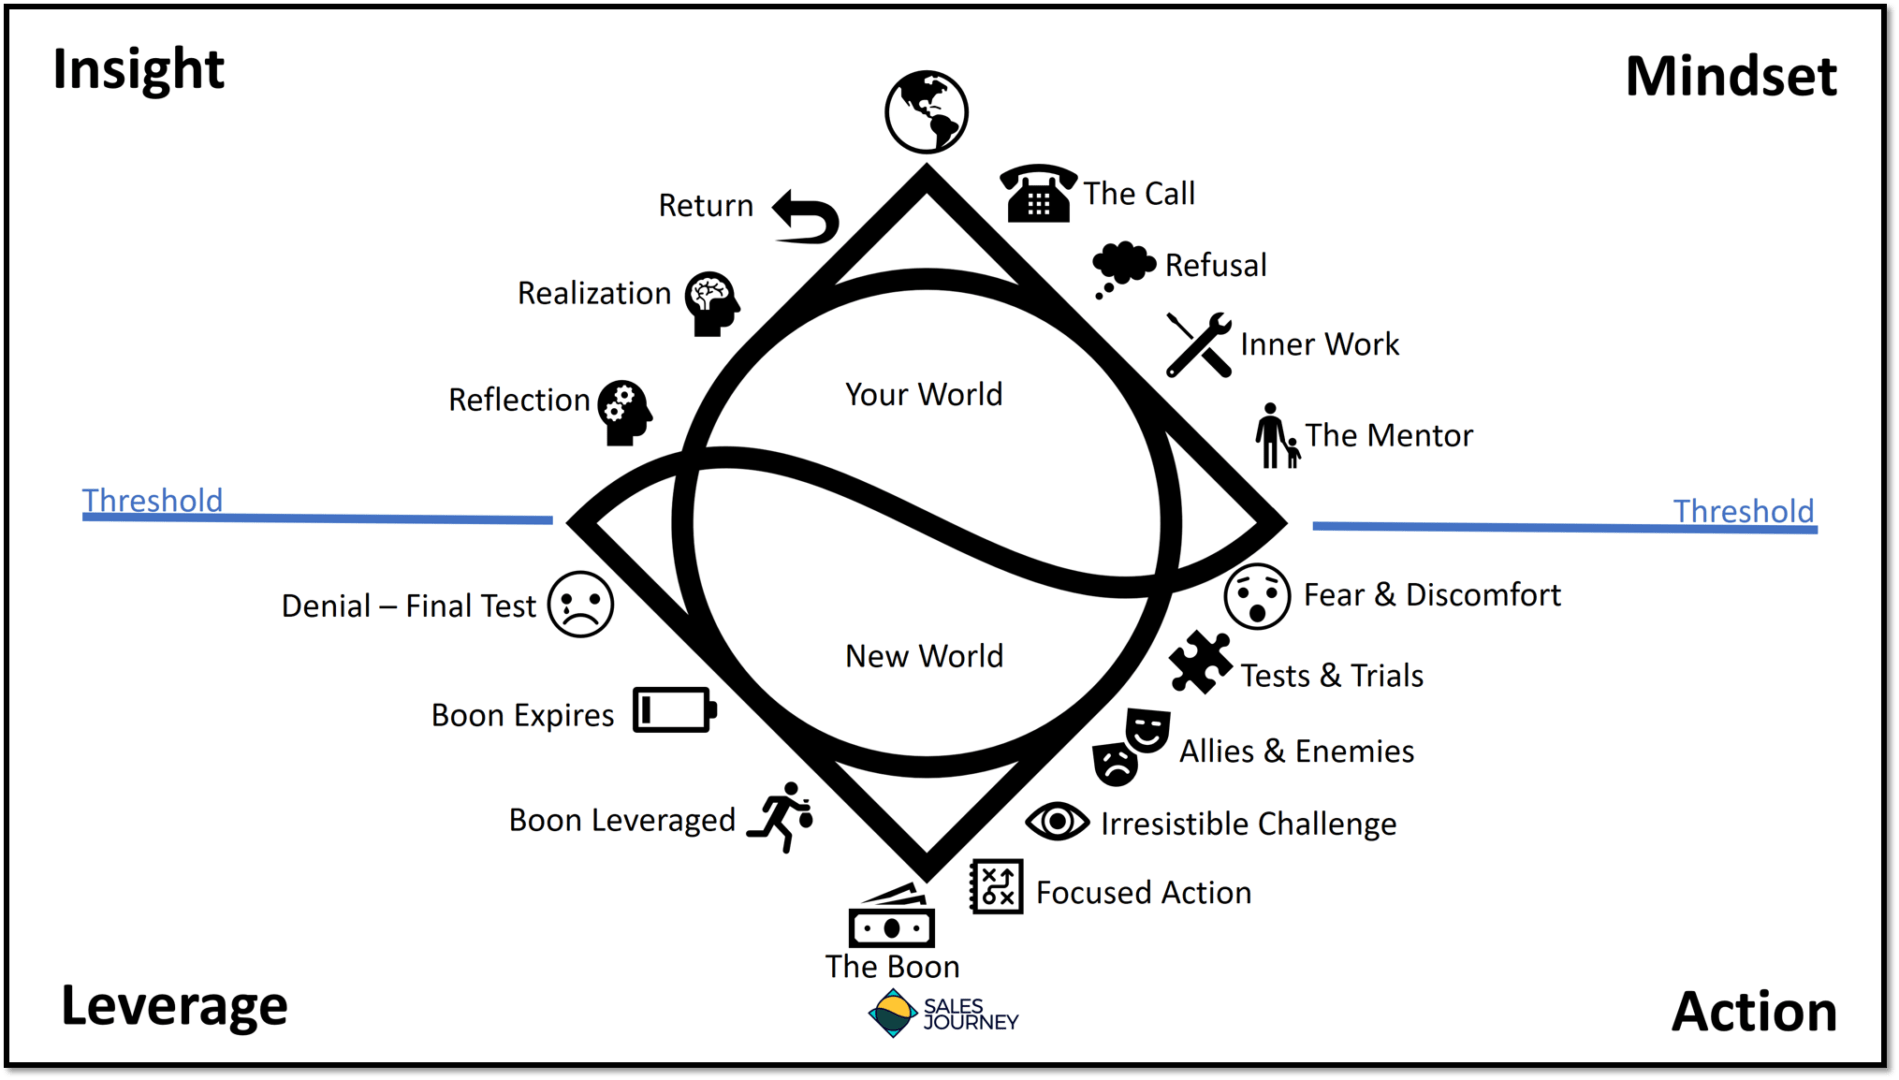 The Sales Journey Process